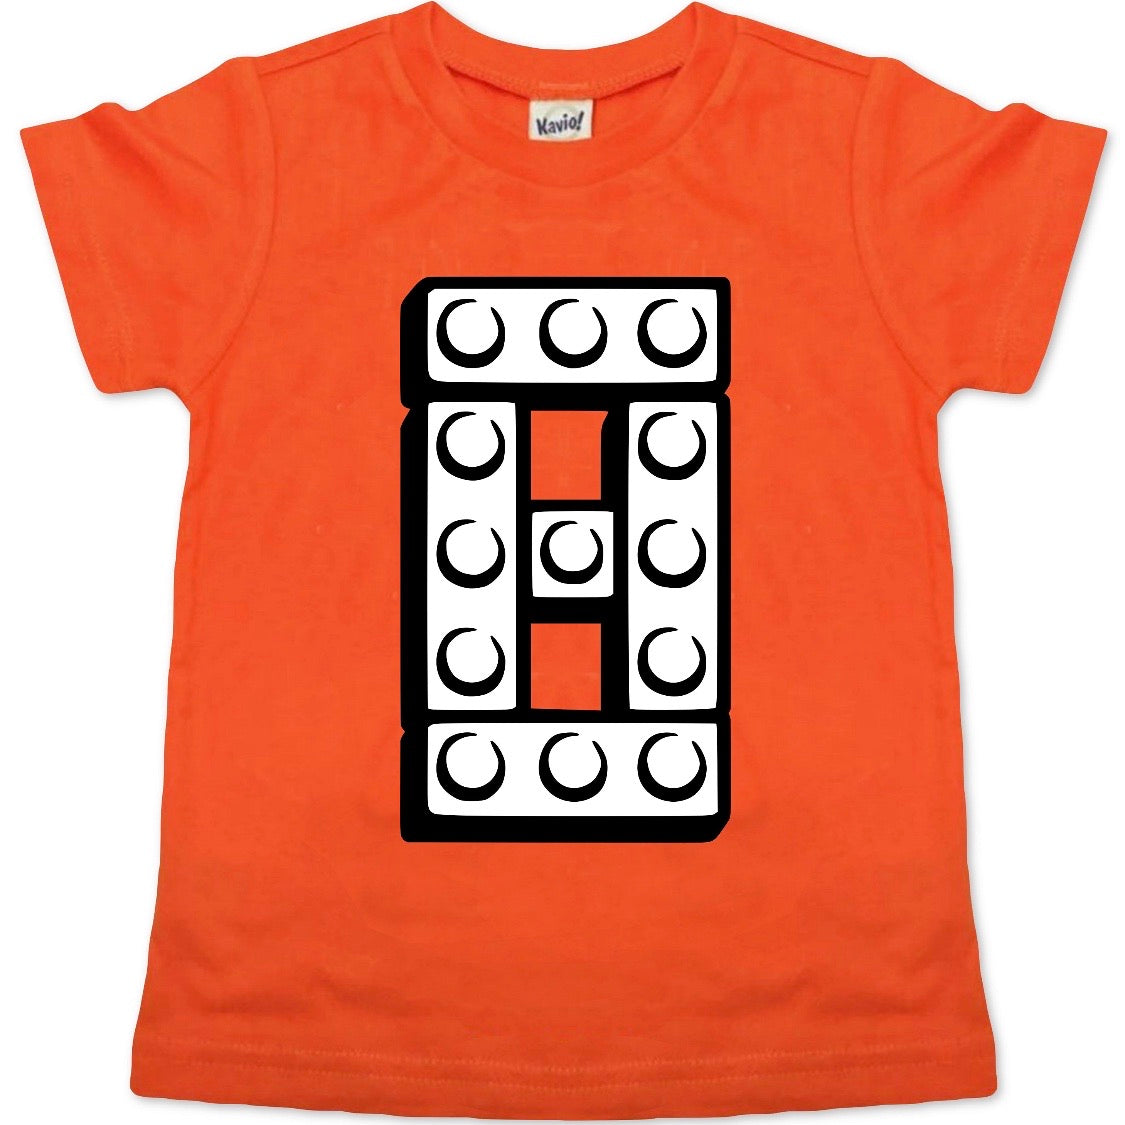 8 BUILDING BLOCK BIRTHDAY SHIRT